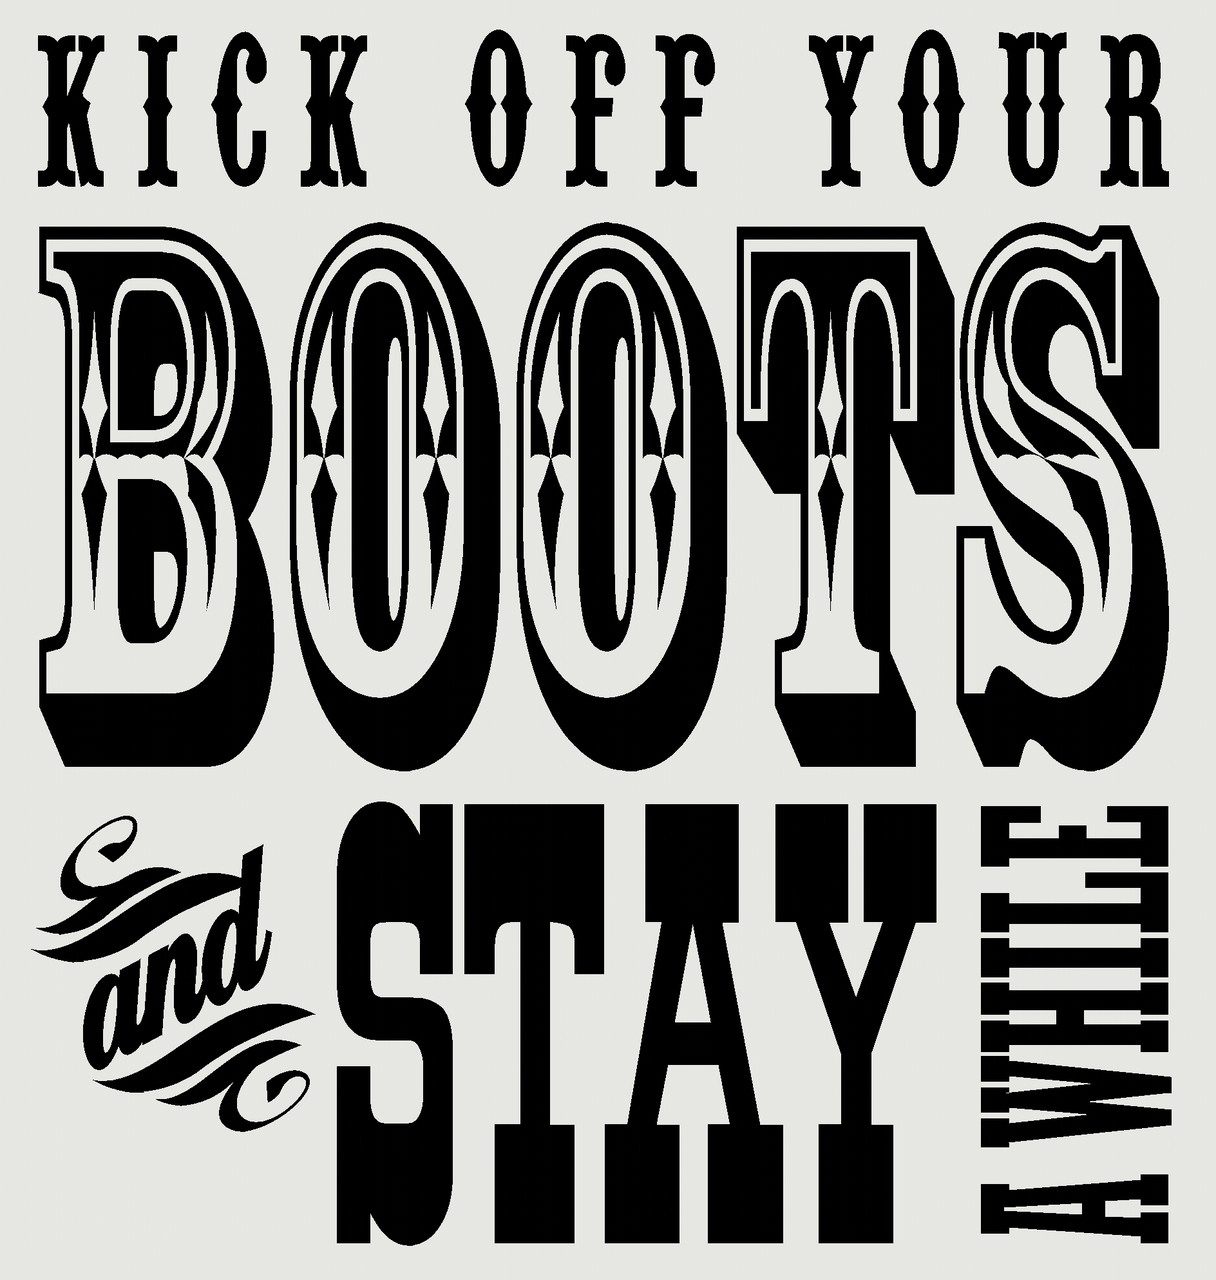 Kick off your boots and stay awhile western vinyl decals wall kick off your boots and stay awhile western vinyl decals wall stickers words loading zoom amipublicfo Images